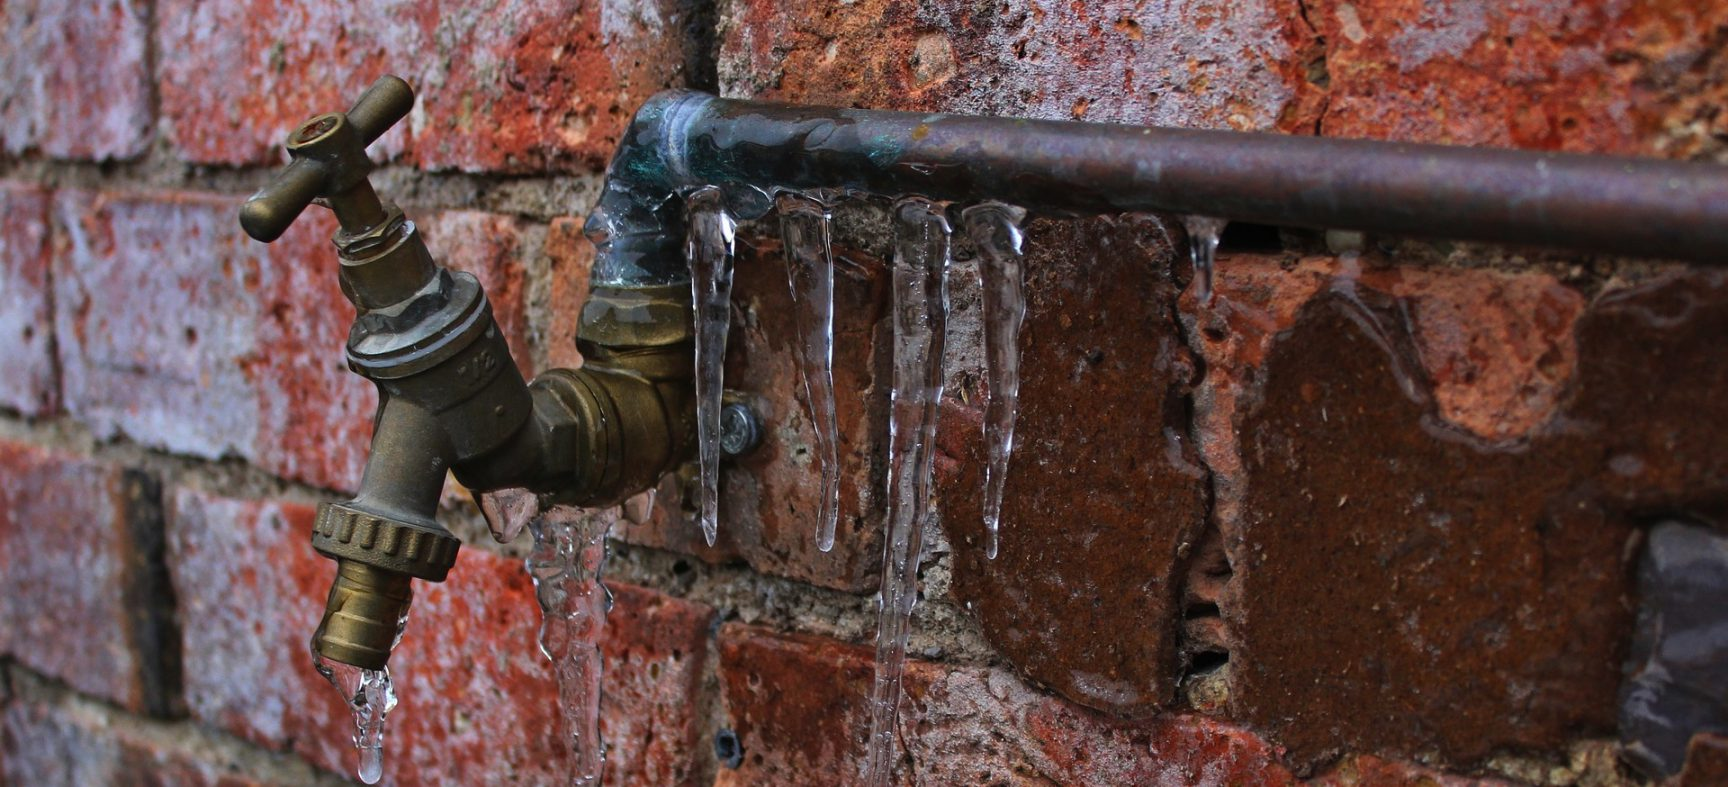 4 tips to keep your water pipes from freezing